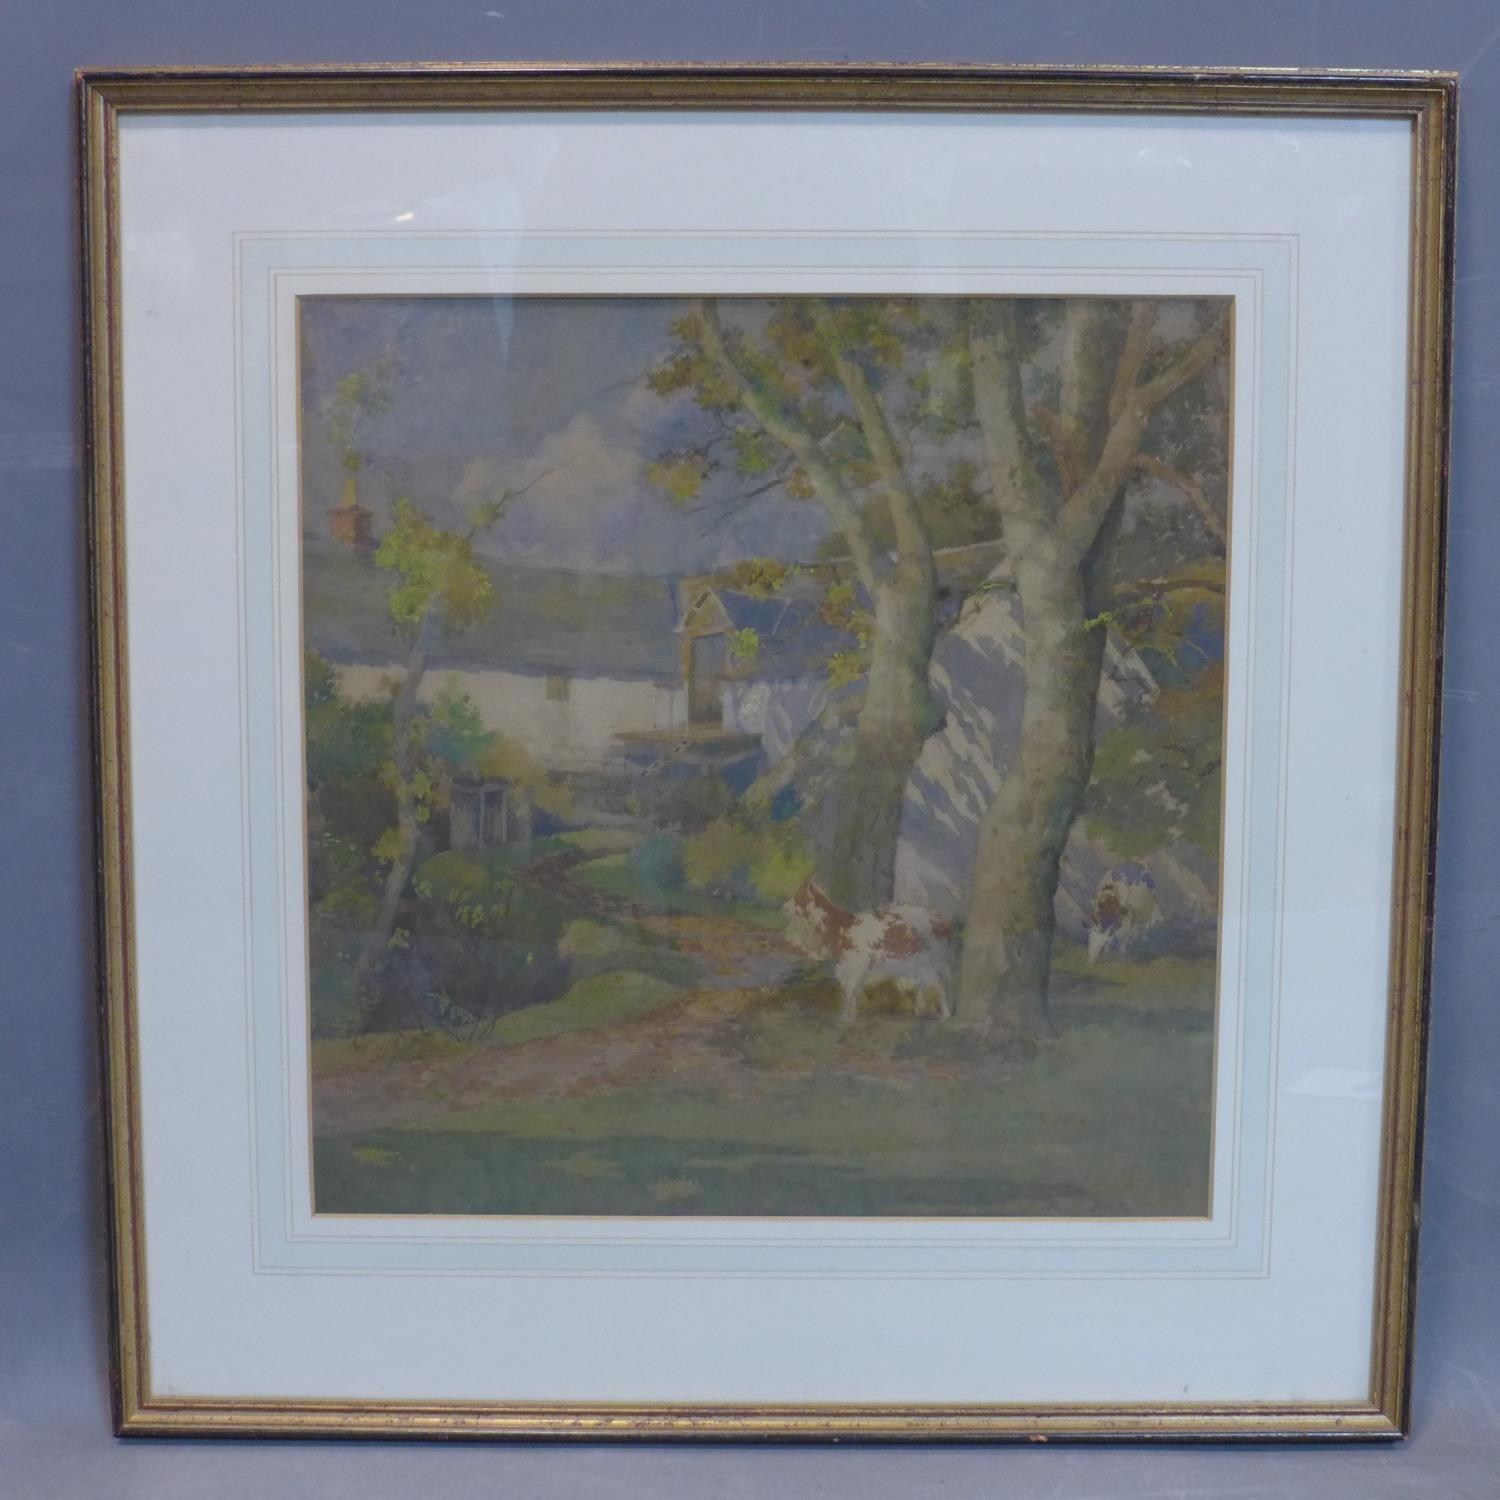 Lot 50 - Alexander P Thomson (1887-1962), 'The farmstead', watercolour, signed, framed and glazed, 48 x 43 cm